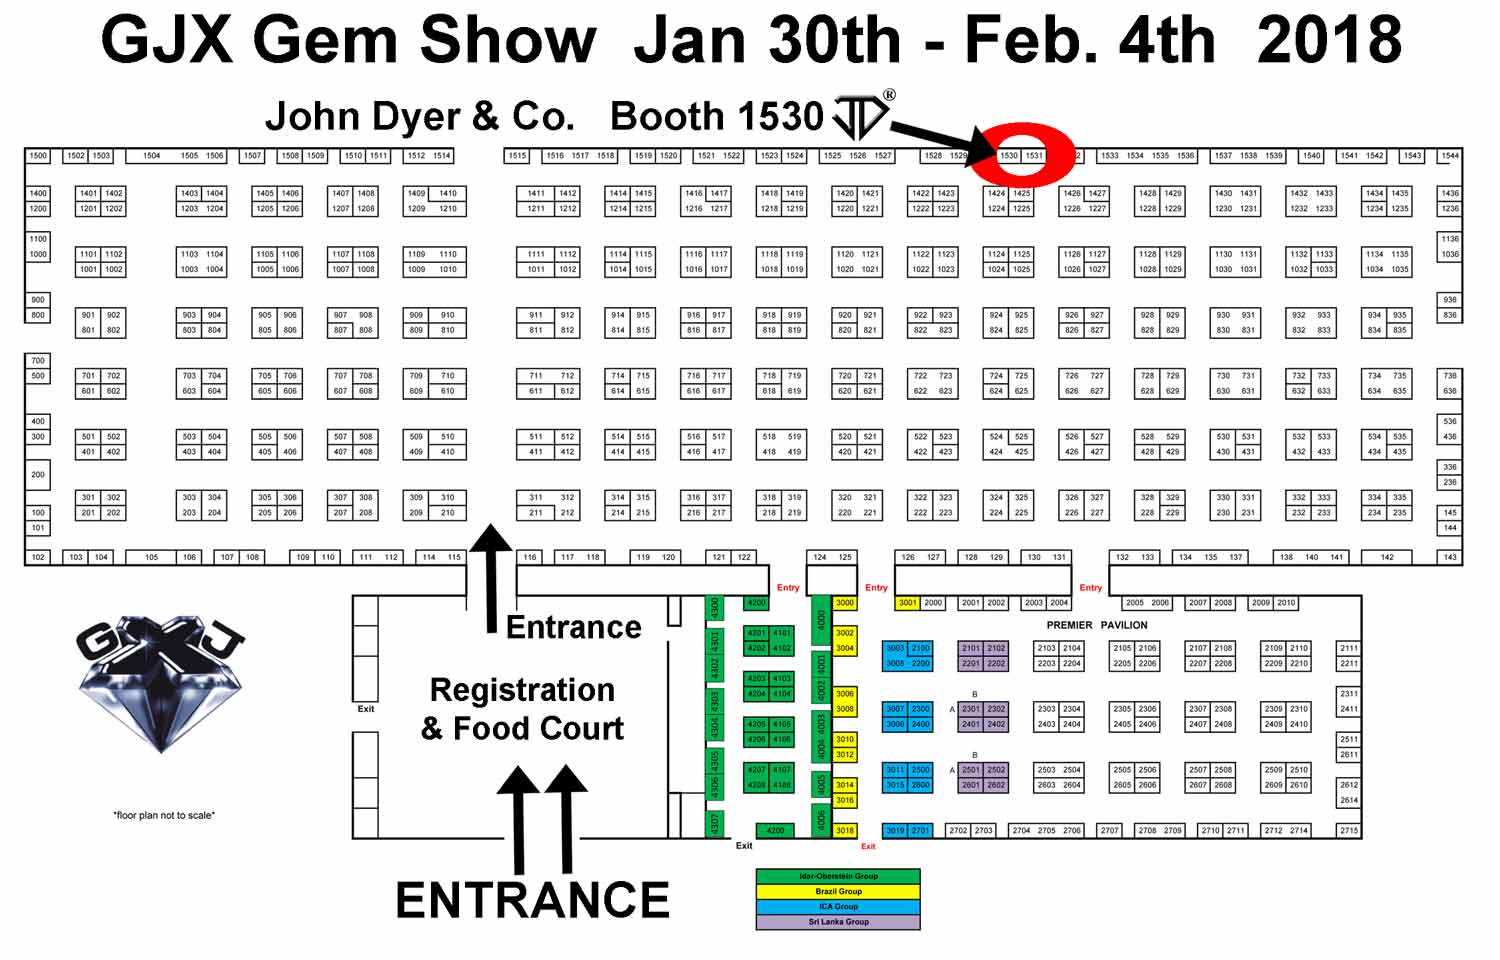 John Dyer Gems Booth Location in the GJX Gem Show in Tucson